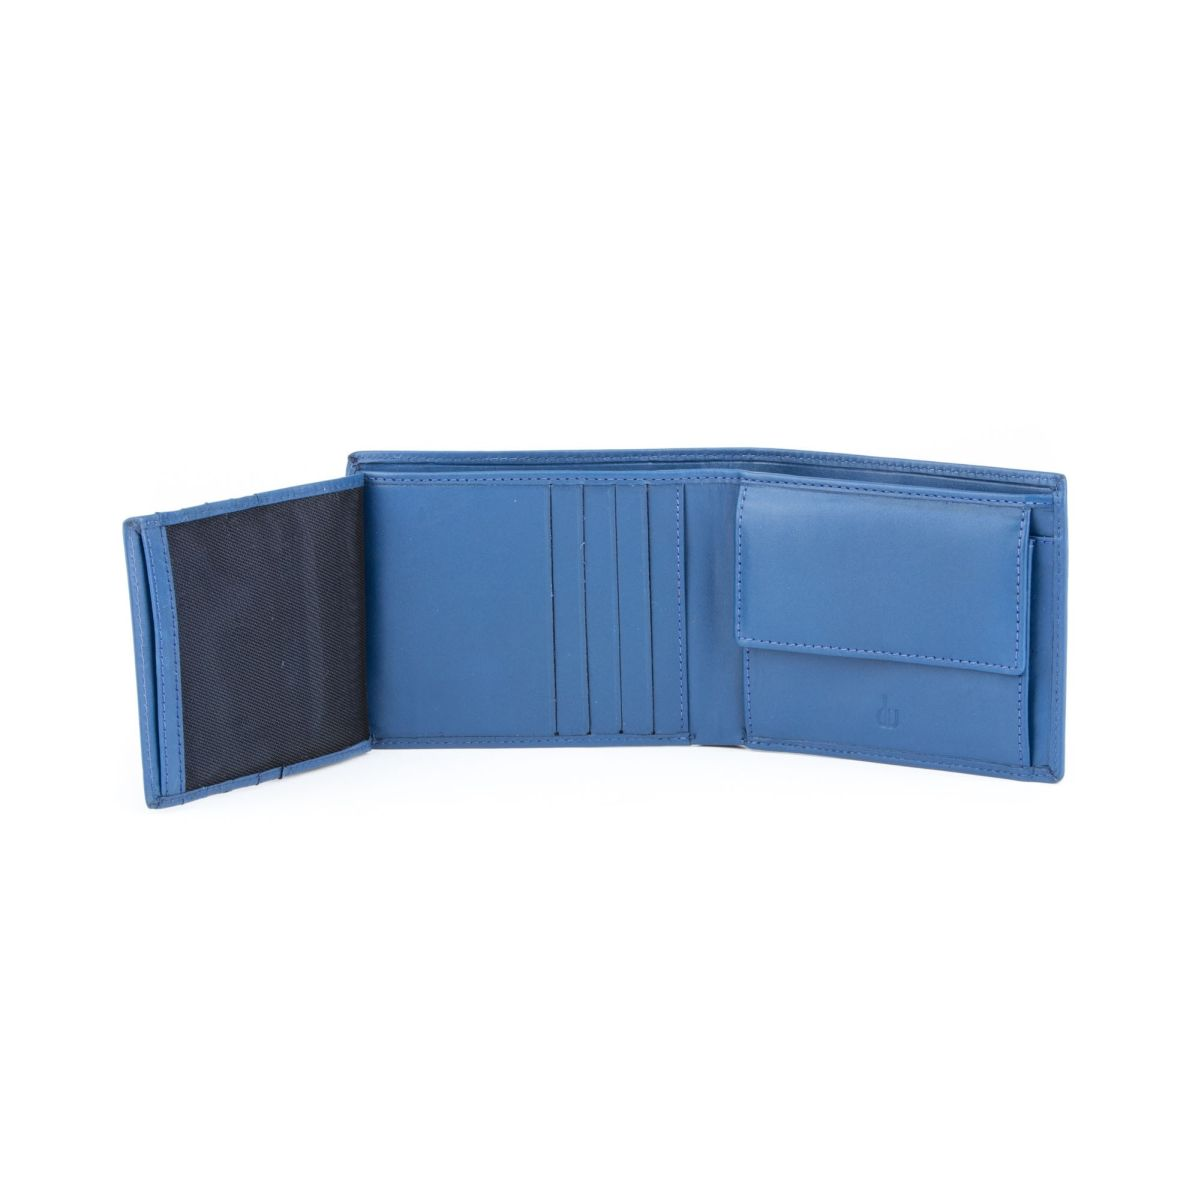 dv Leather Wallet for men with inner flap side - Blue